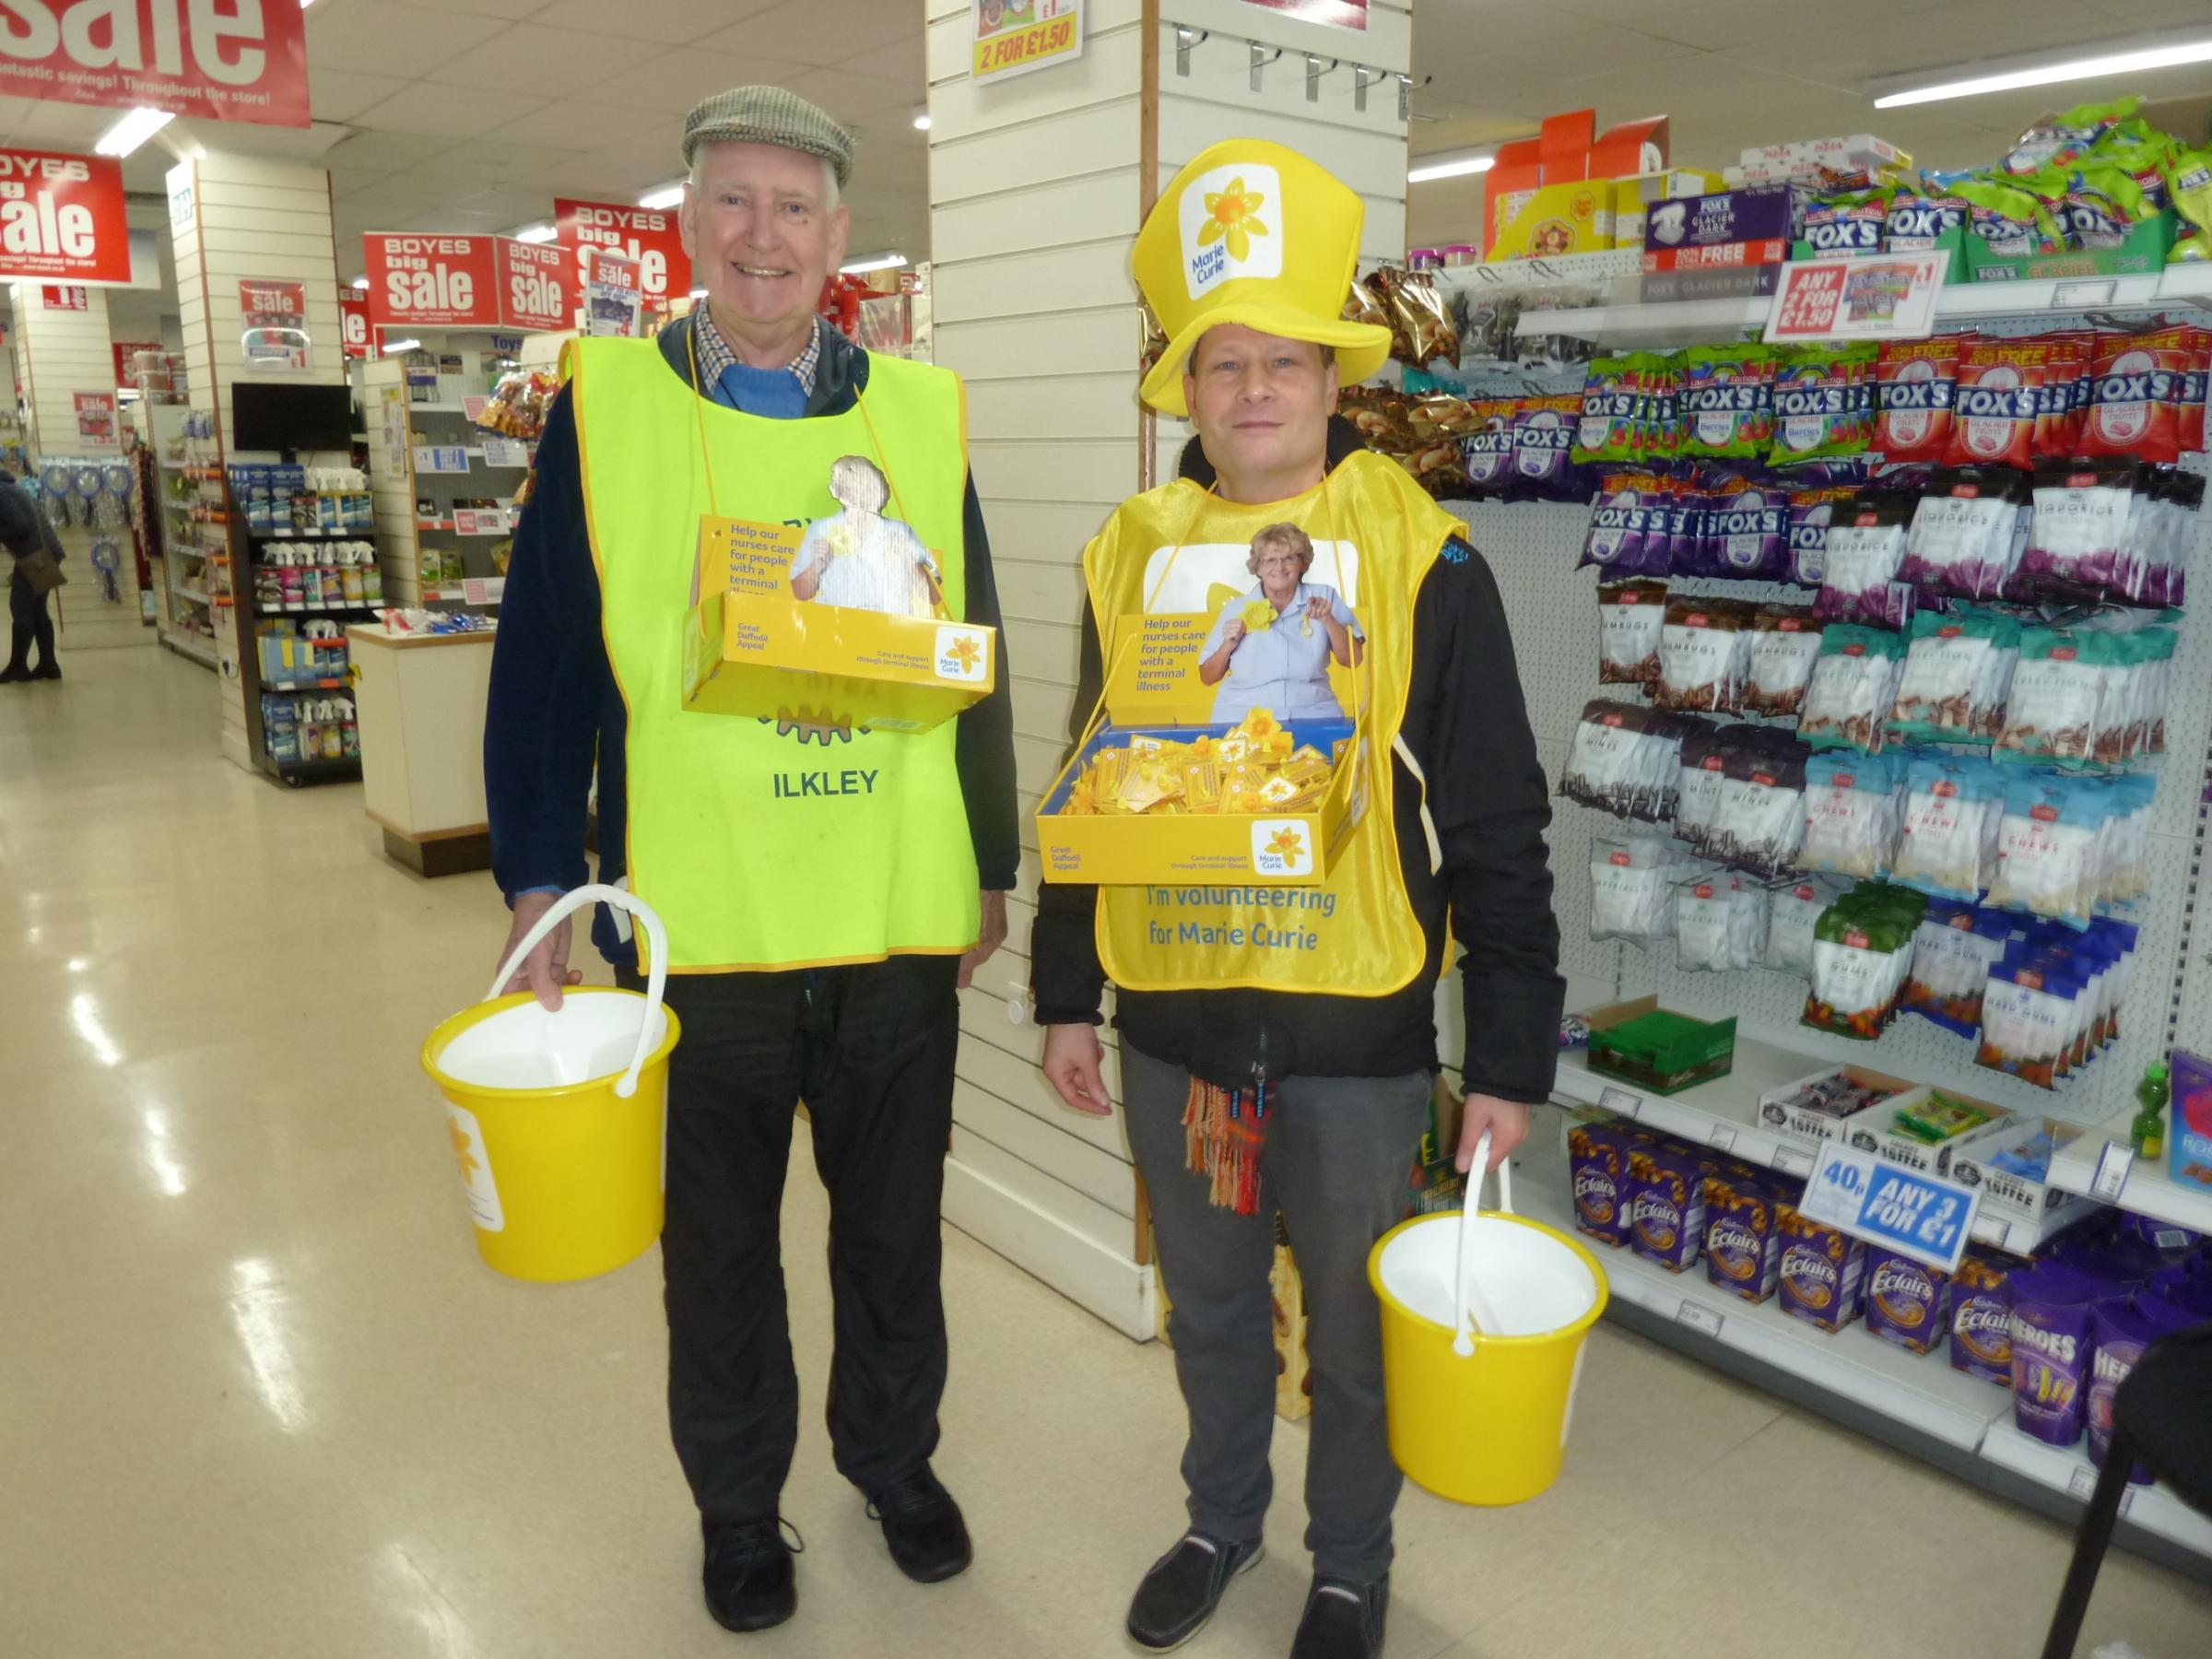 Andrew Allison and David Shaw, members of The Rotary Club of Ilkley, taking part in the Marie Curie collection in Boyes, Ilkley